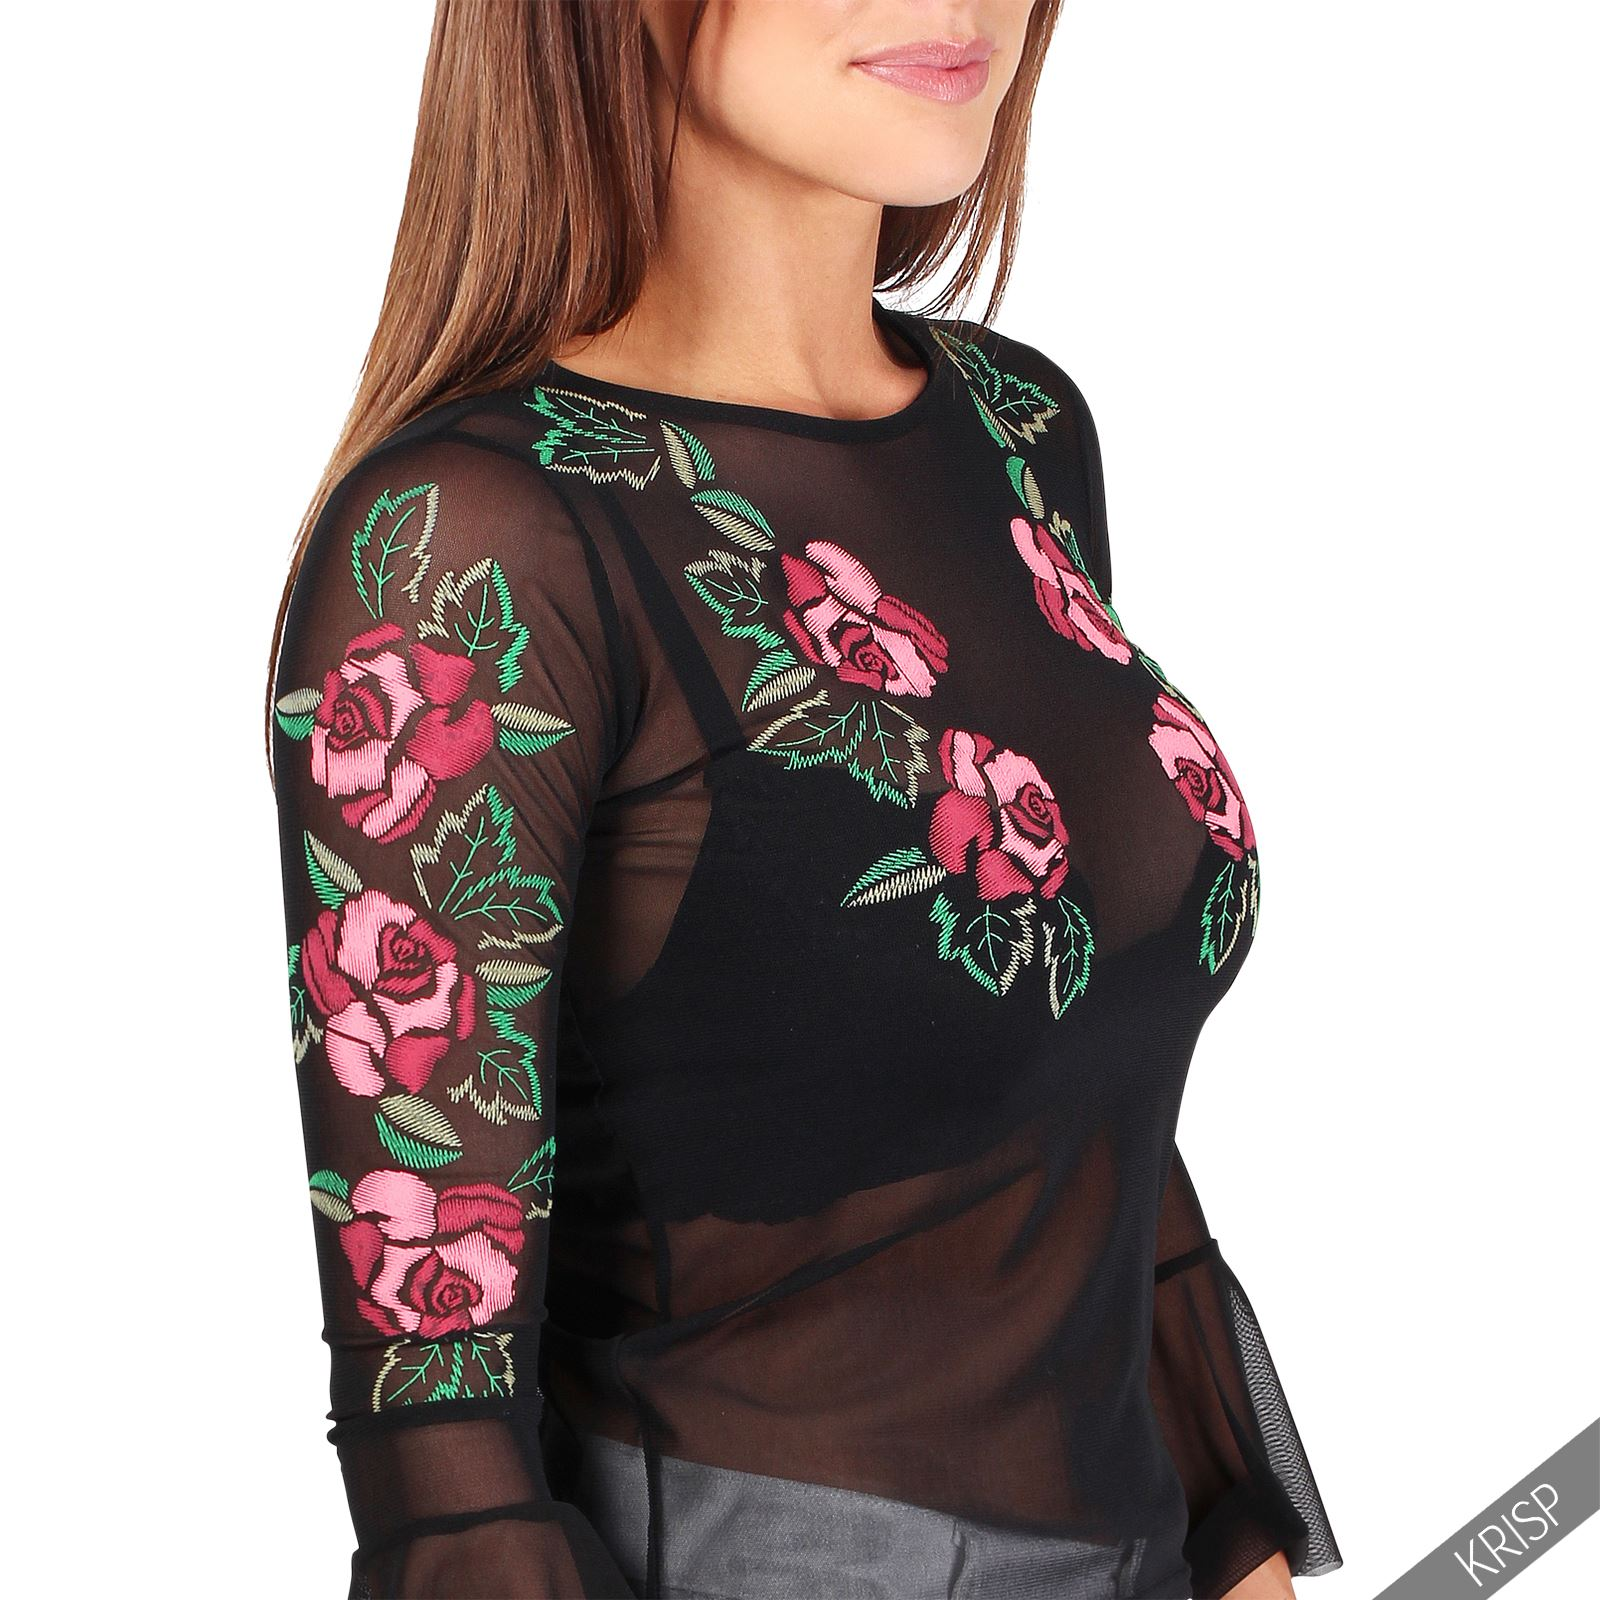 Womens Ladies Long Sleeve Embroidered Mesh Ruffle Top T